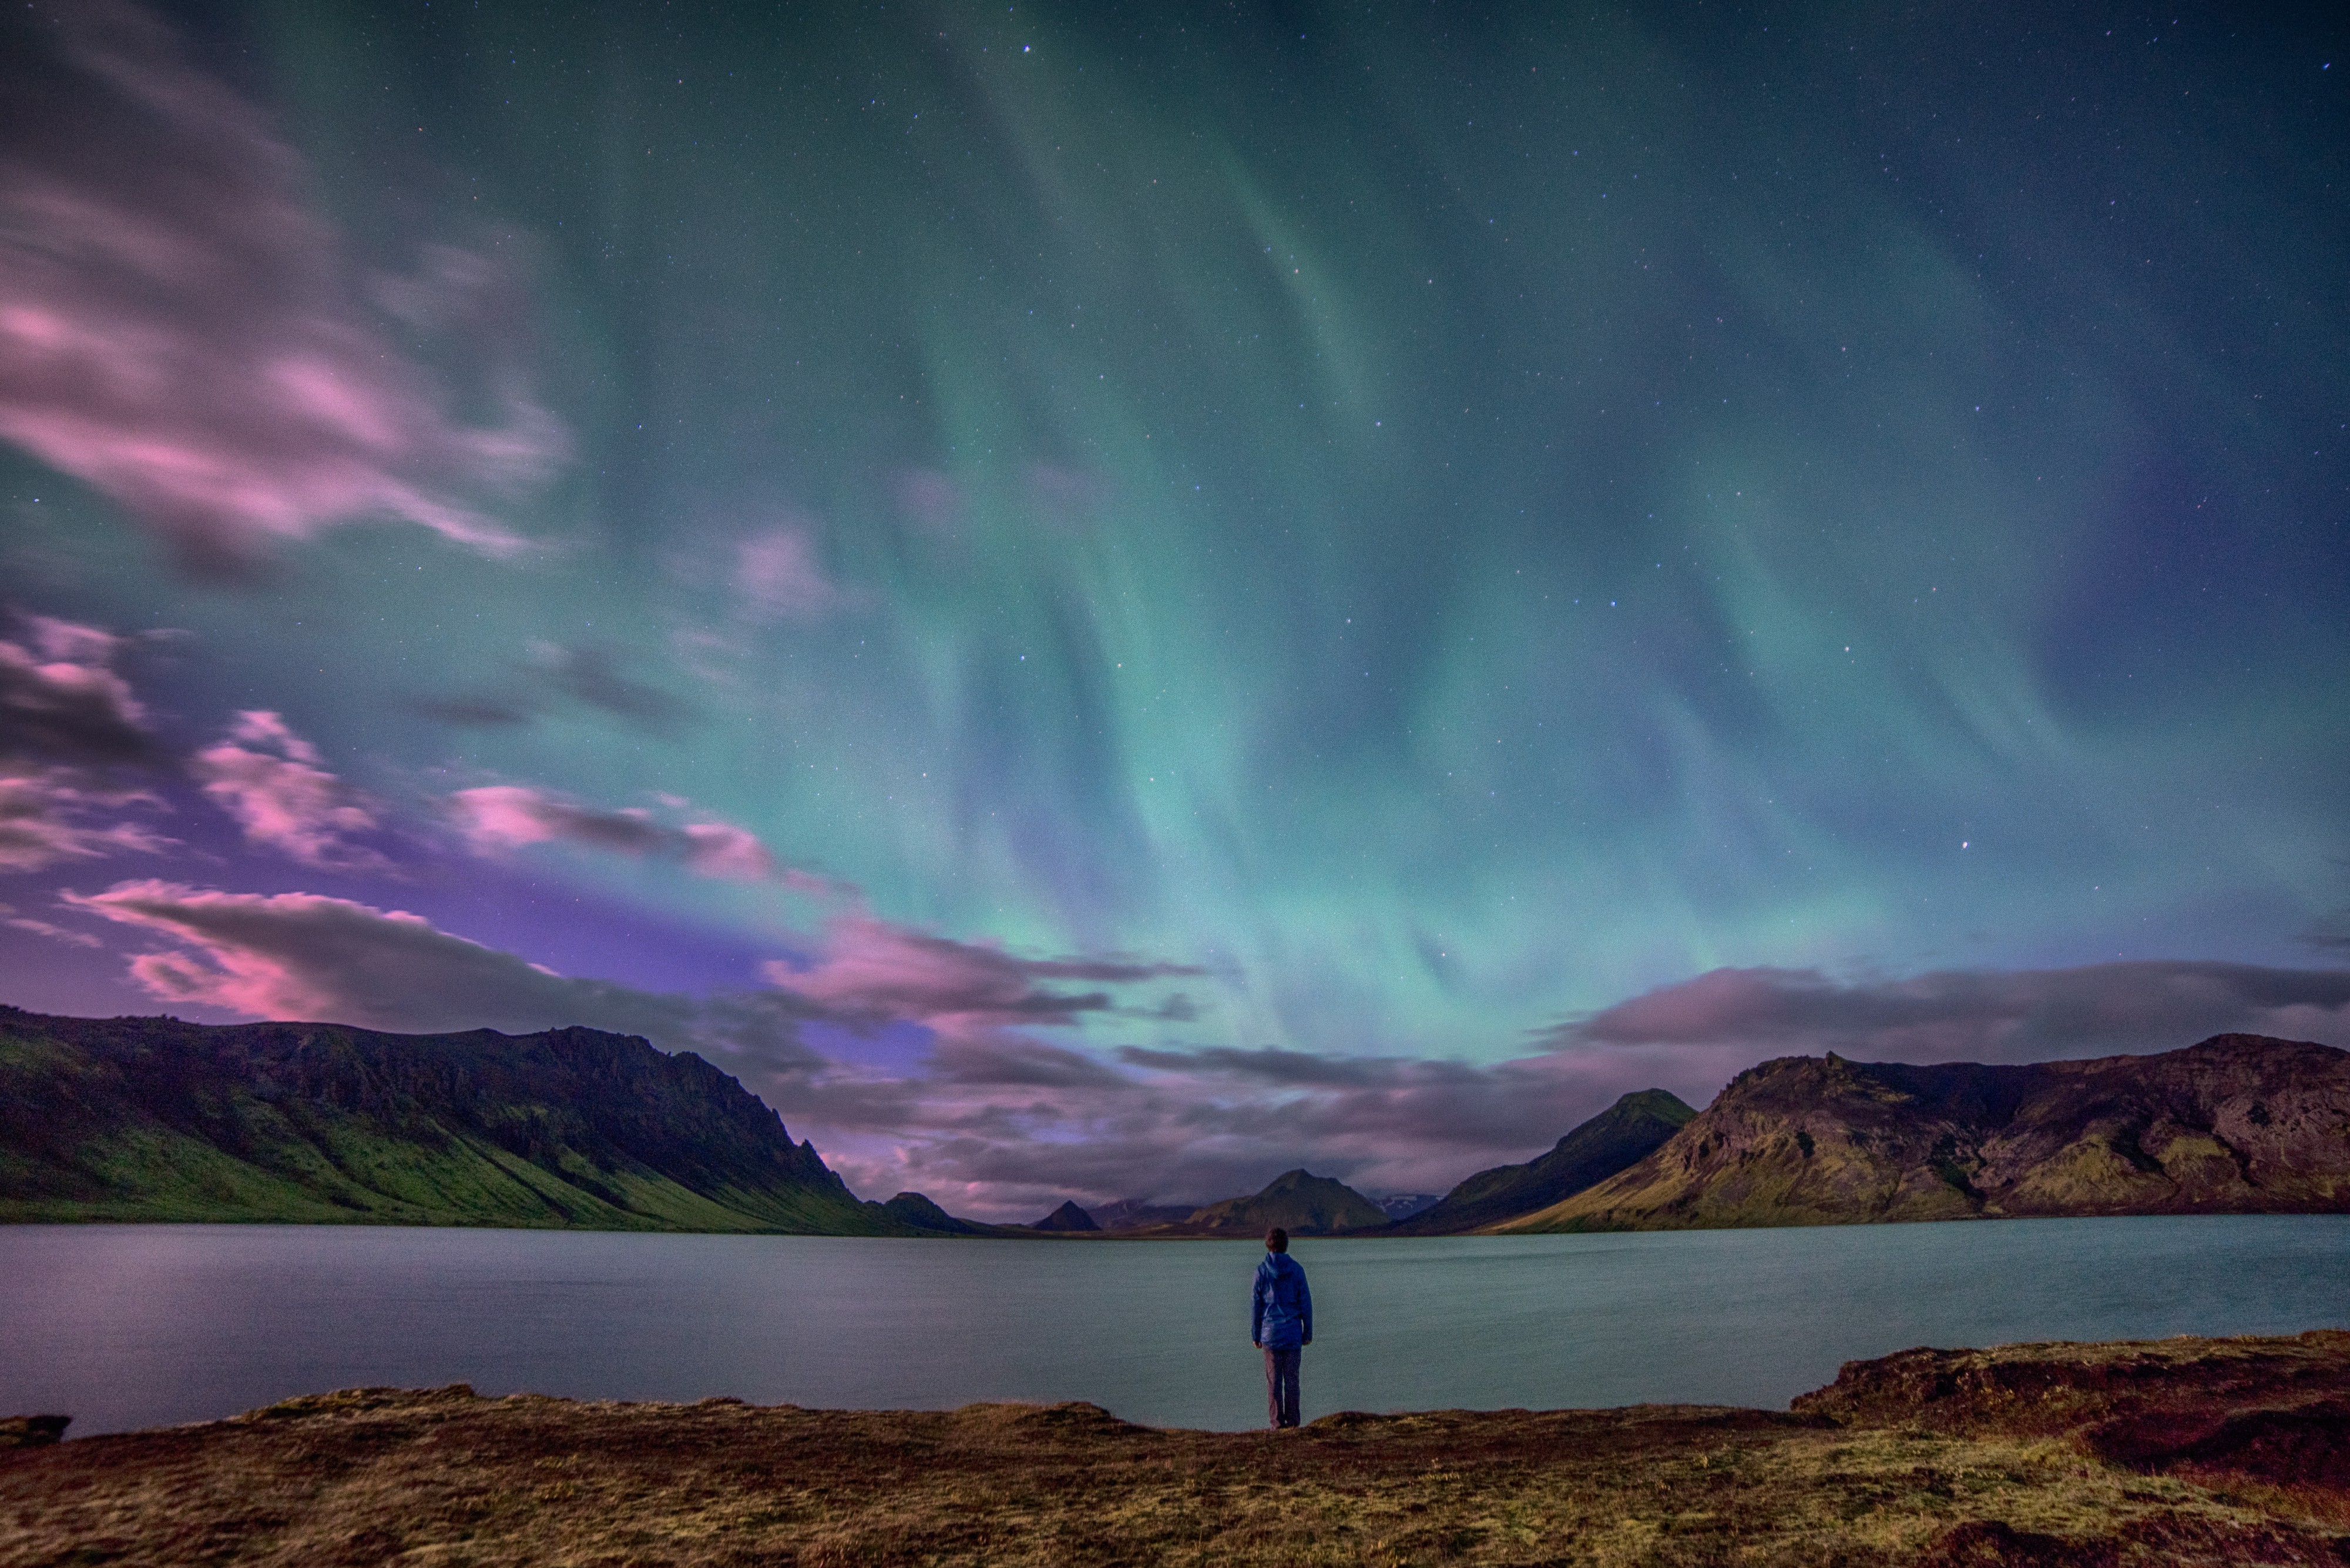 A person stands by a lake gazing at the Aurora Borealis